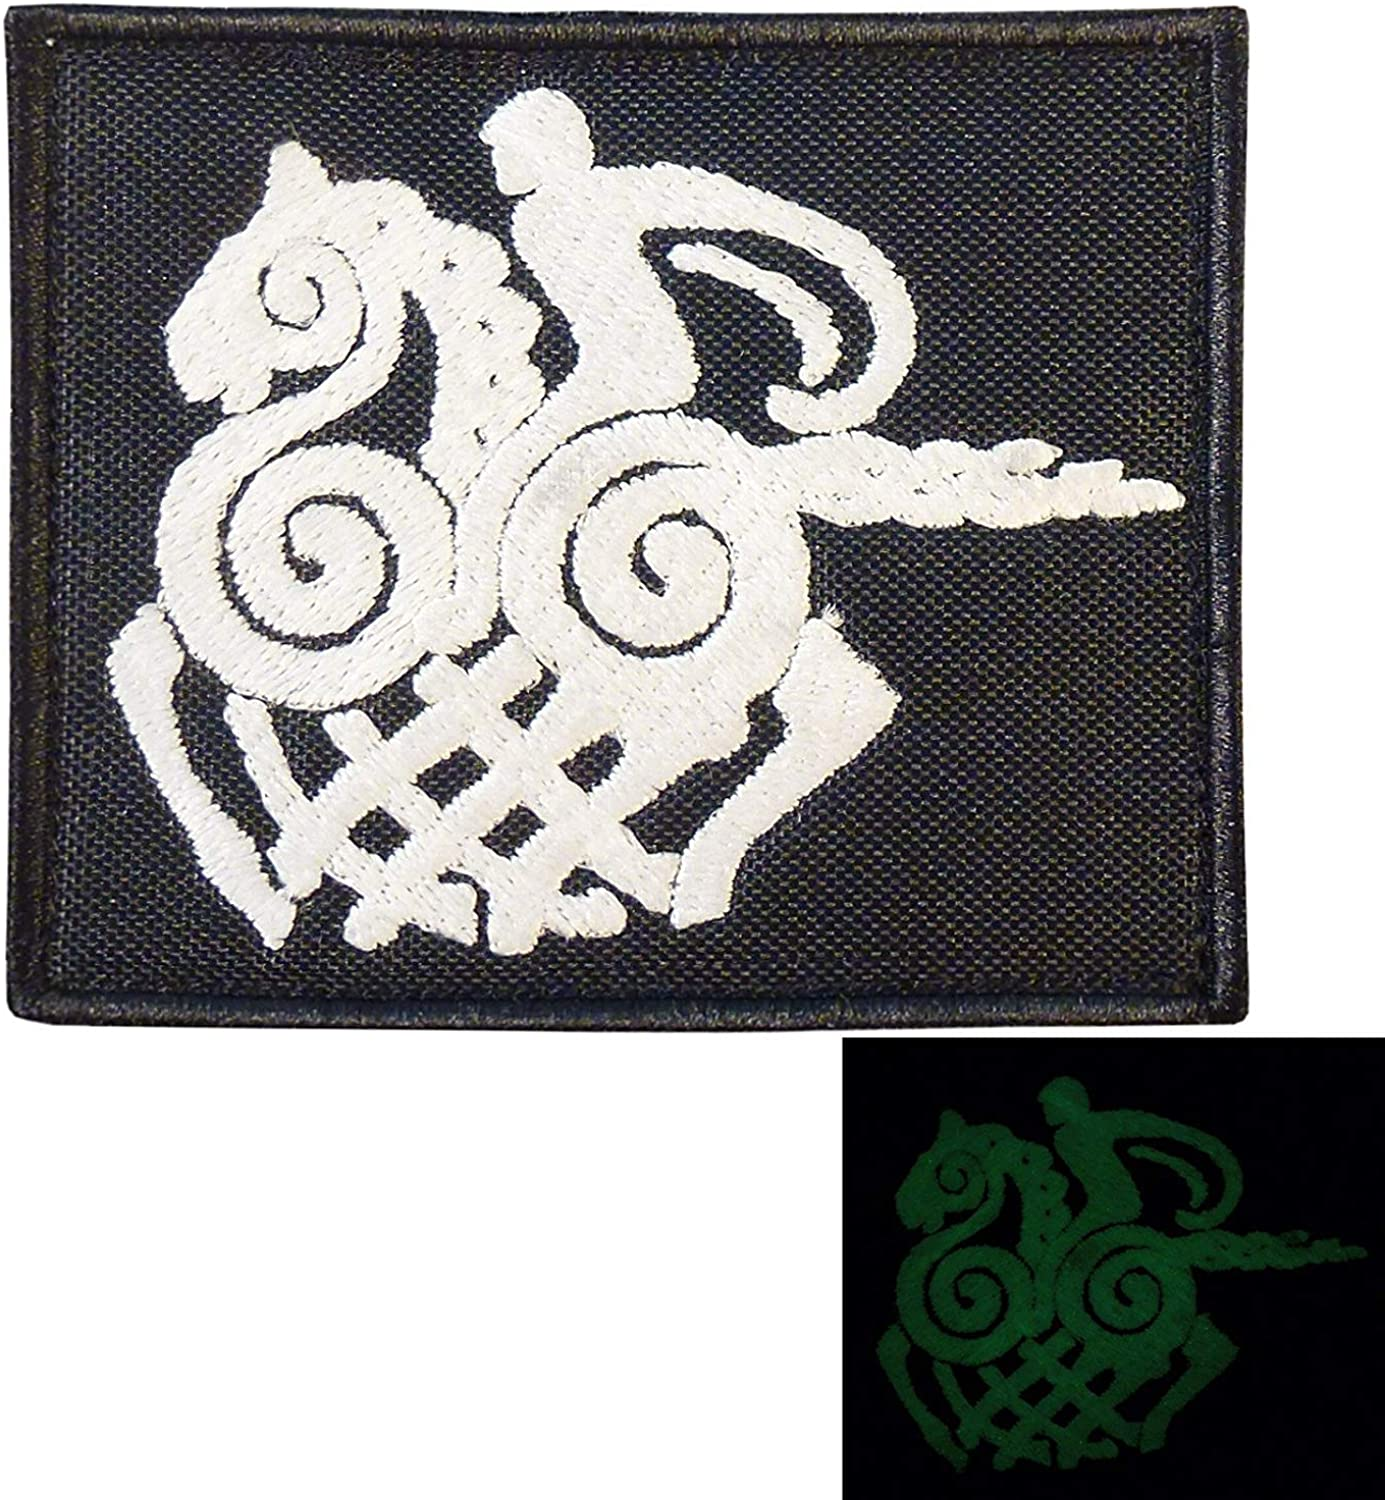 LEGEEON Sleipnir Horse Odin God Norse Asgard Viking Valhalla Morale Tactical Embroidery Sew Iron on Patch